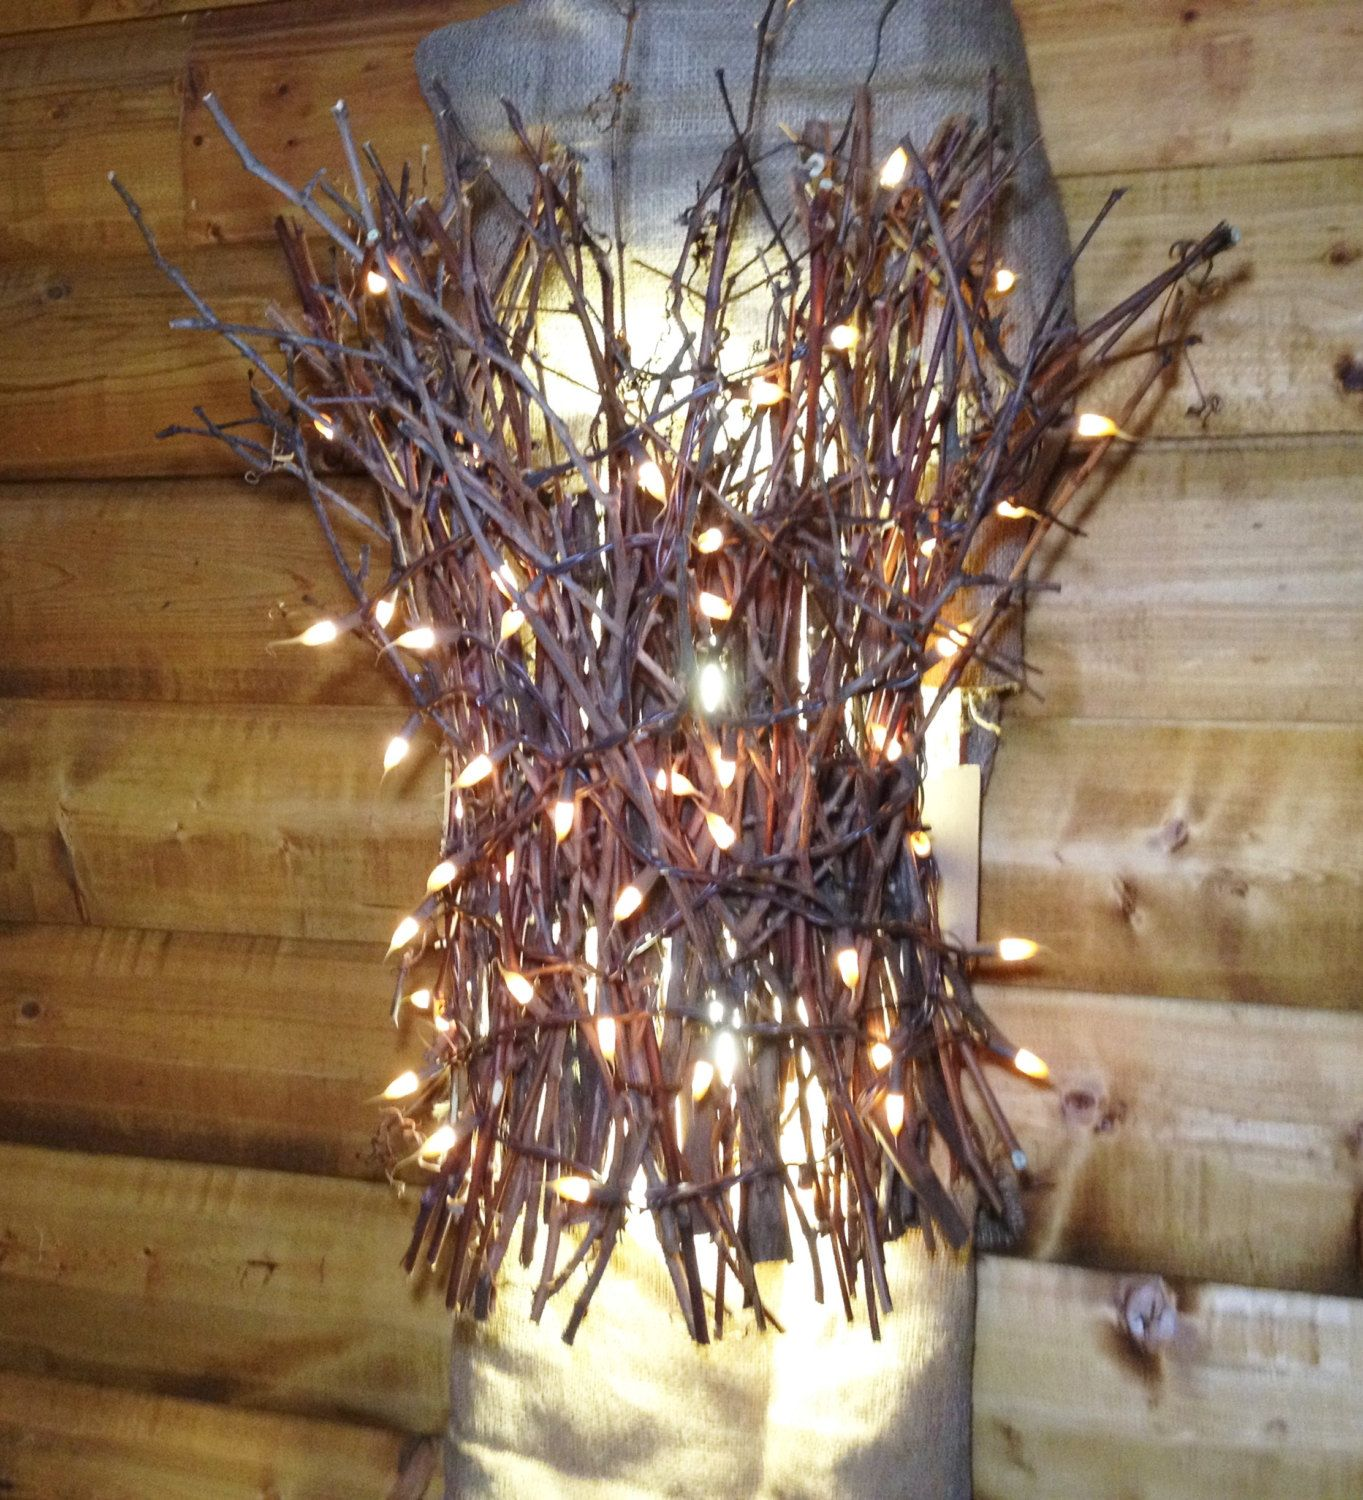 Twig Sconce Wall Sconce Light Light Up Branches Up Down